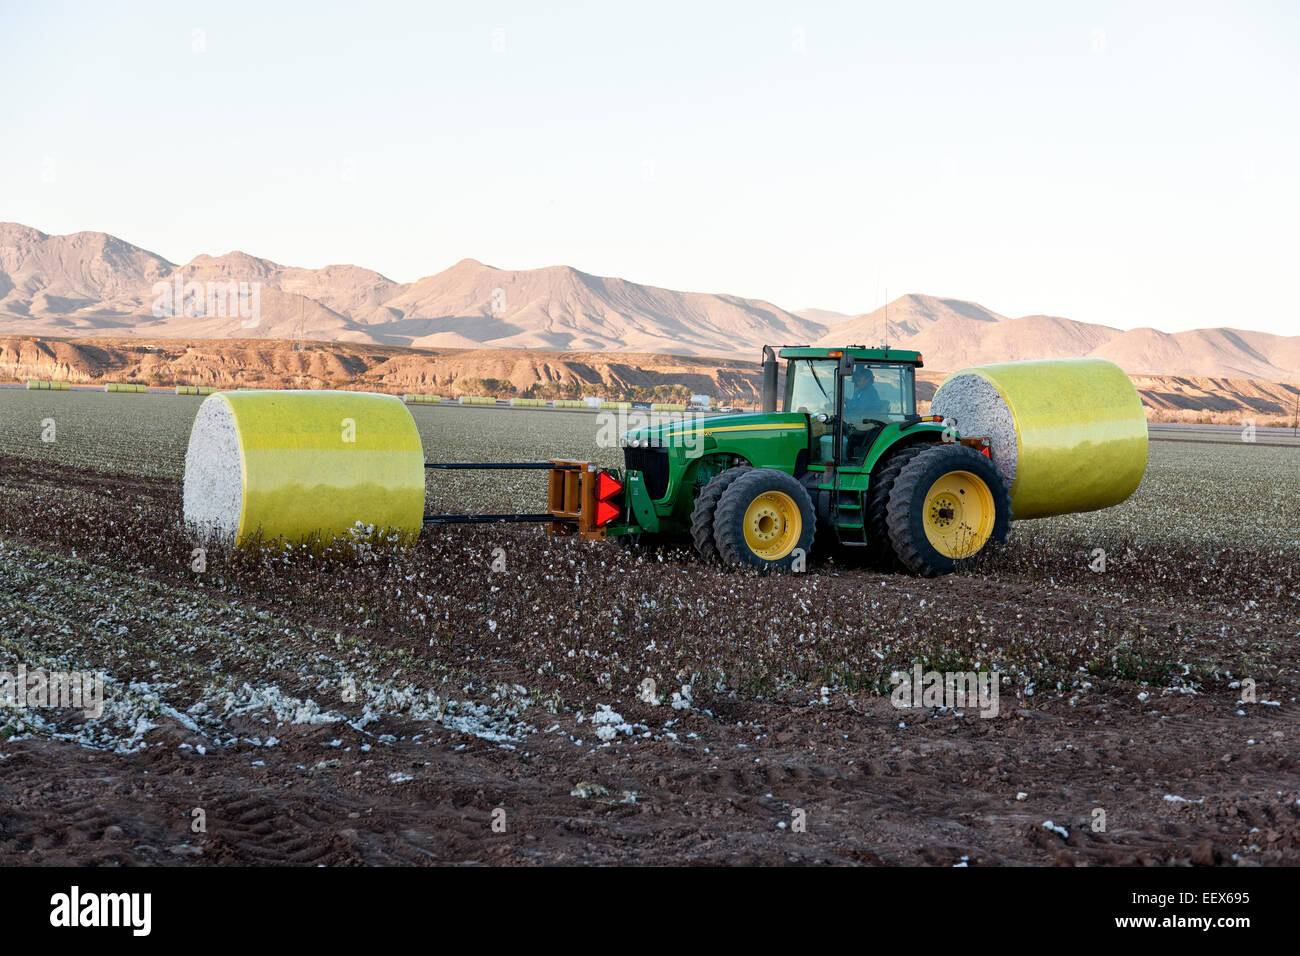 Tractor transporting harvested cotton modules. - Stock Image